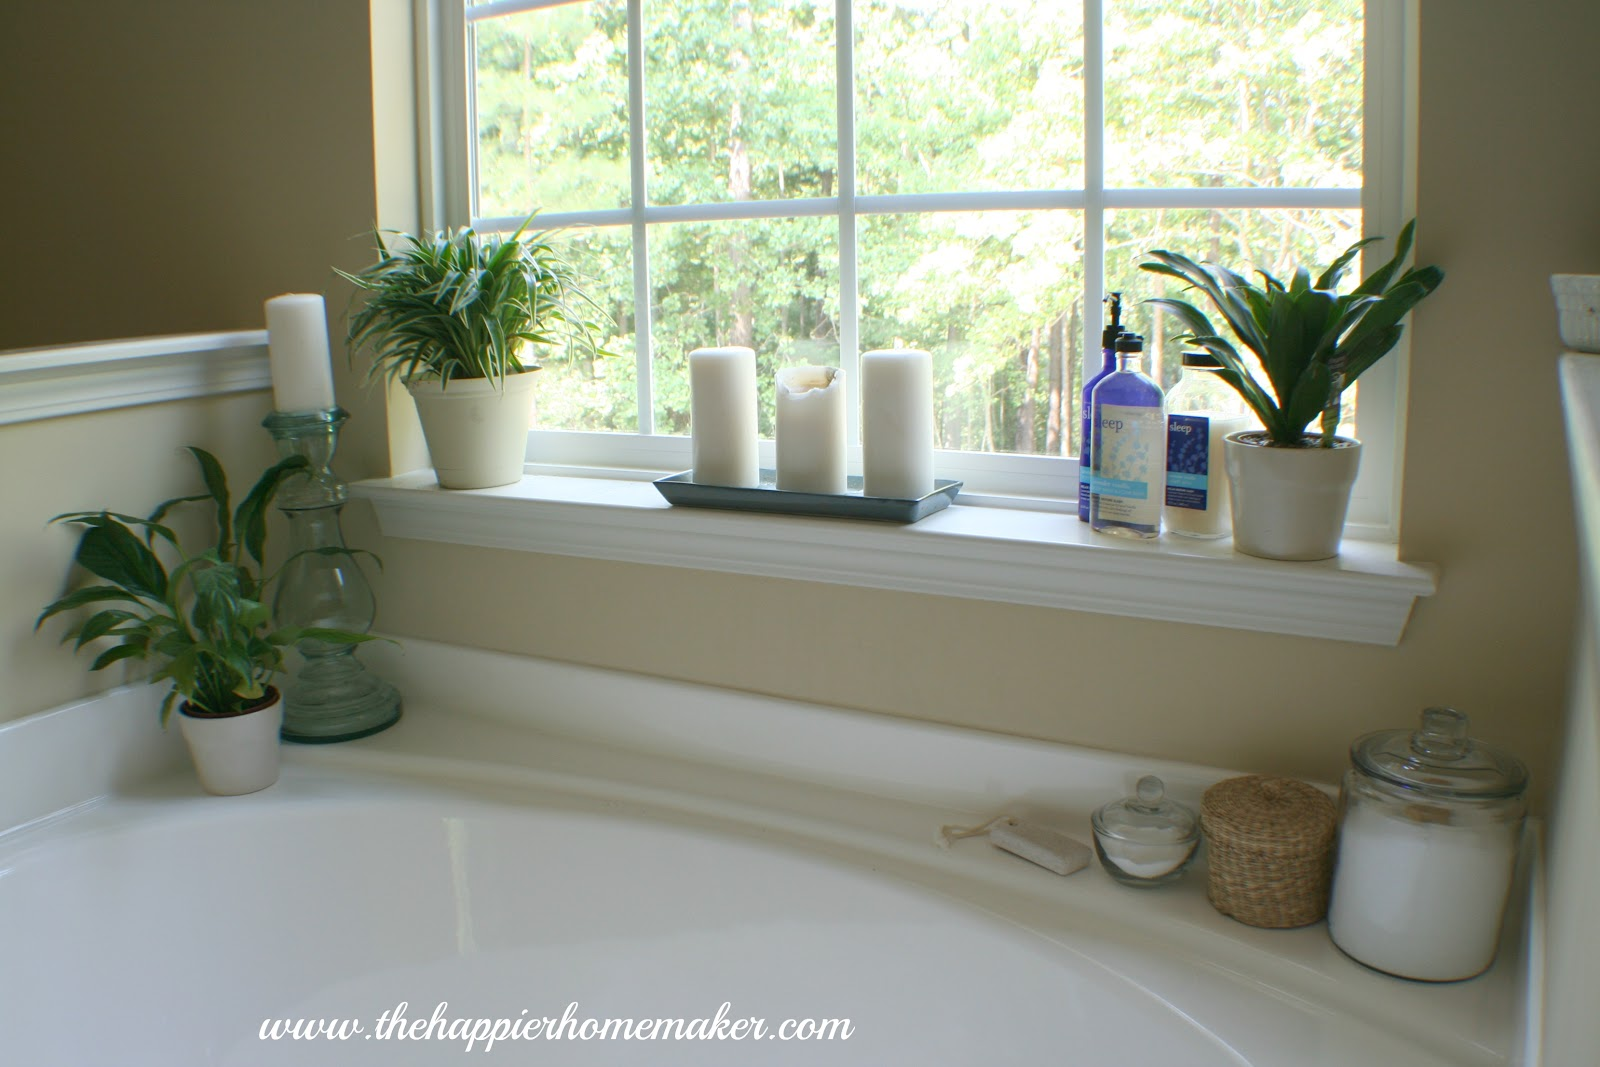 Decorating Around A Bathtub The Happier Homemaker - Candles for bathroom